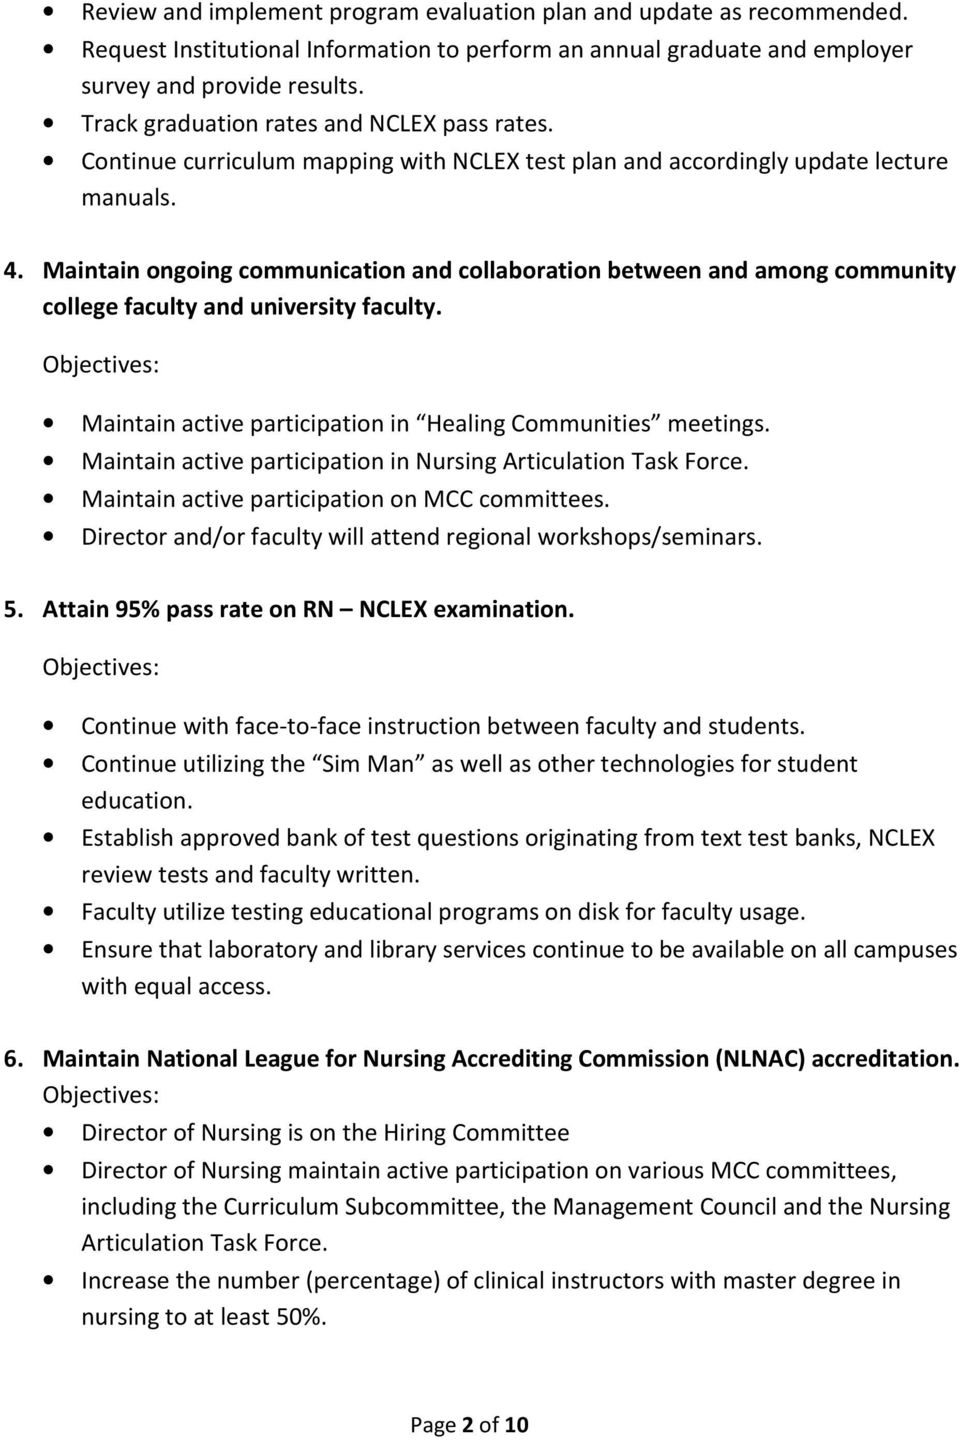 Maintain ongoing communication and collaboration between and among community college faculty and university faculty. Maintain active participation in Healing Communities meetings.